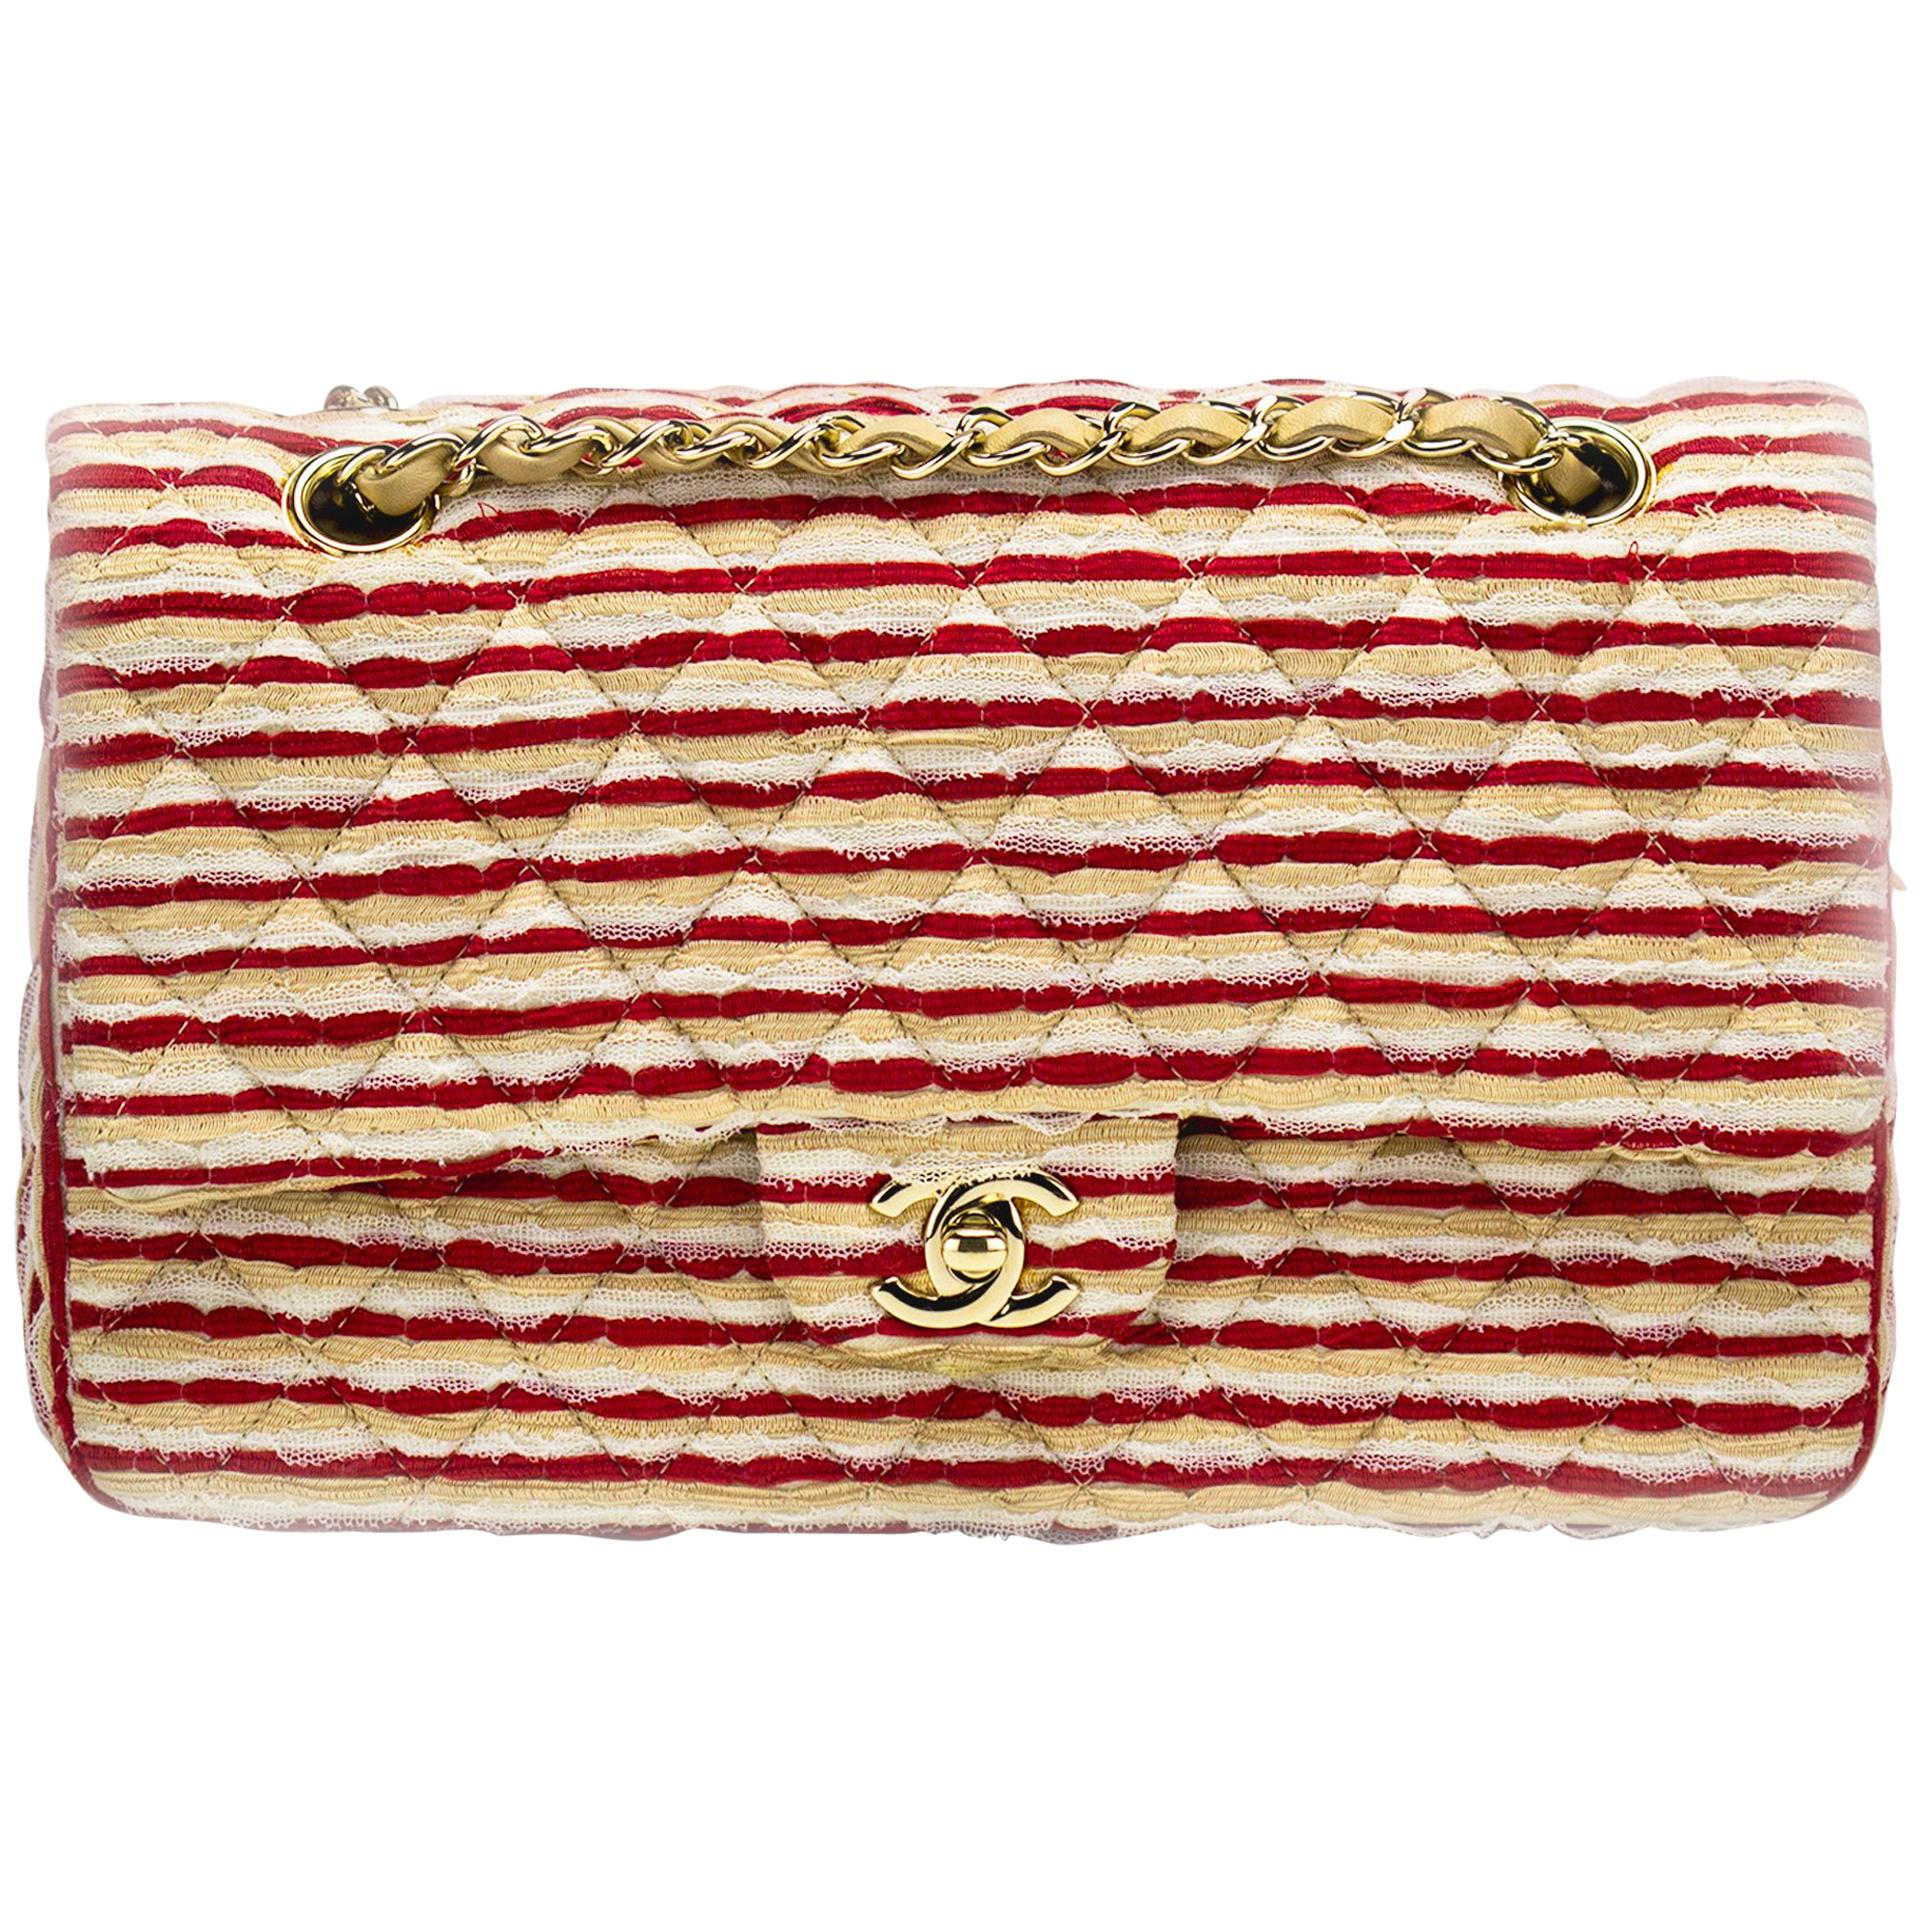 Chanel Medium Classic Vintage Striped Red and Beige Double Flap Bag